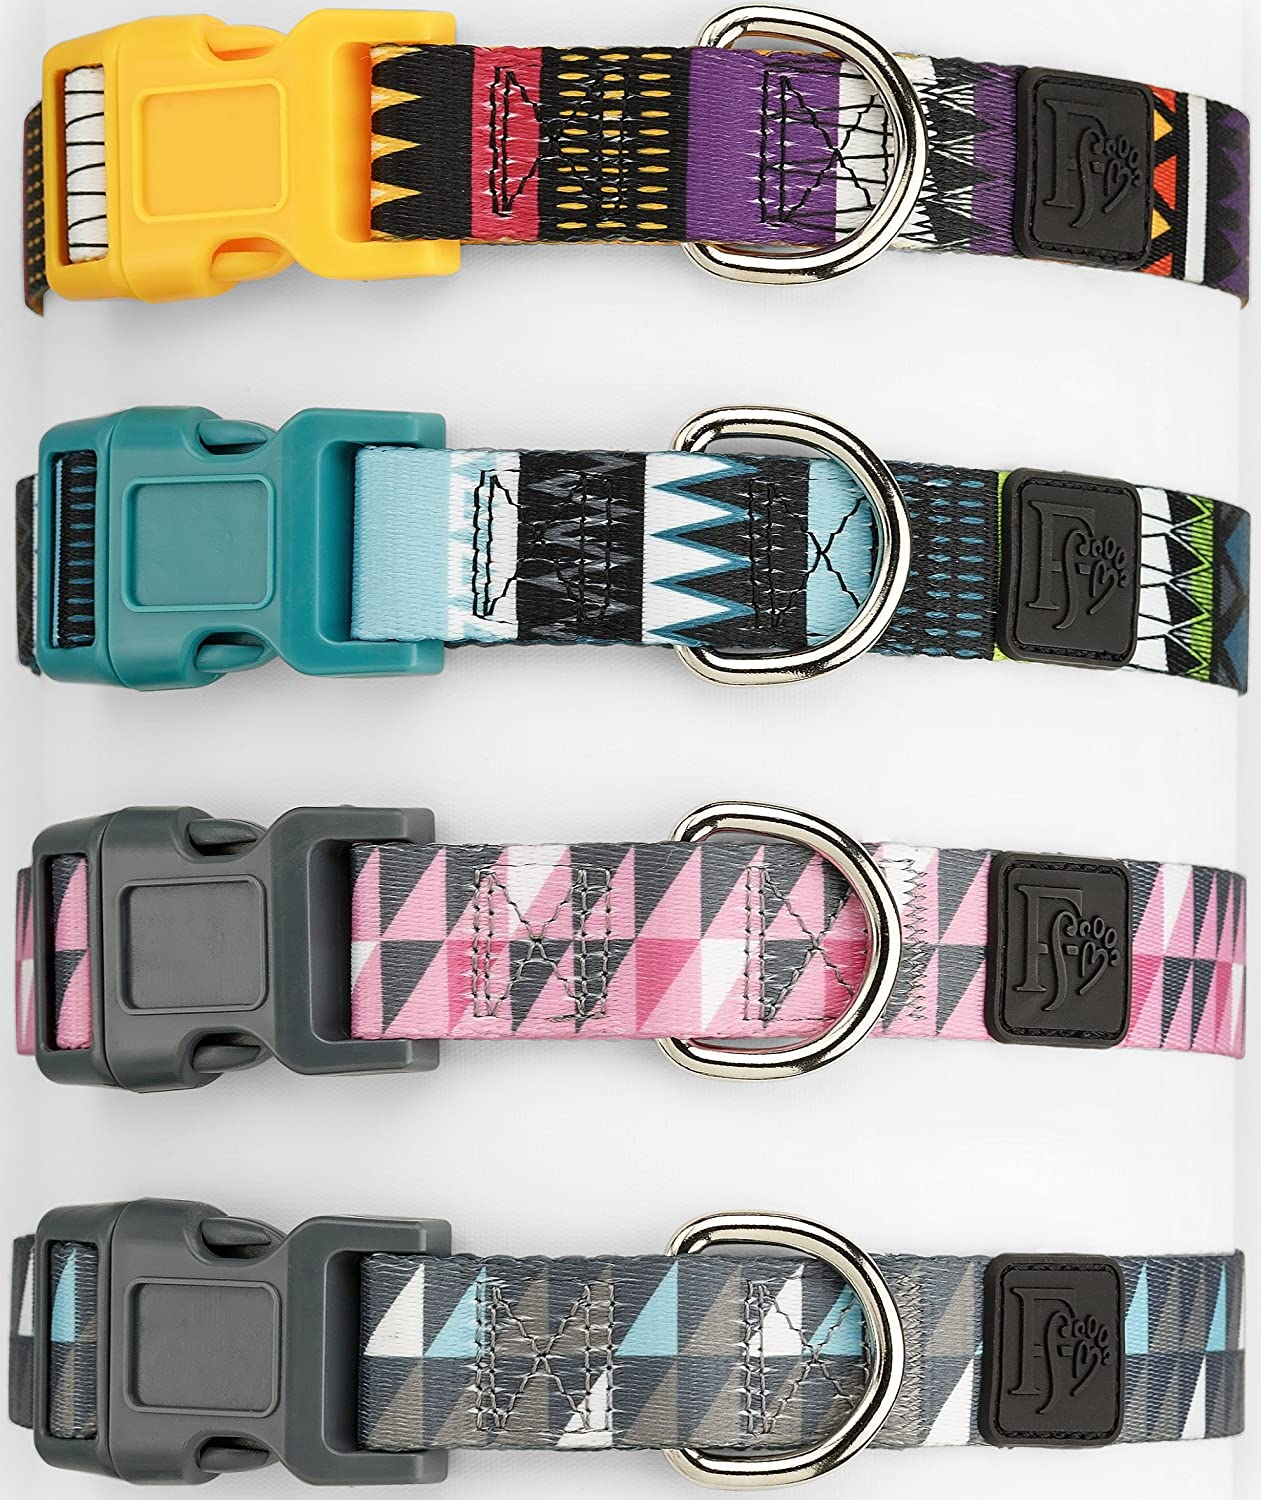 Home collars blueberry pet dog collar nautical flags inspired - Amazon Com Dog Collar With Pattern Designed By Friends Forever Large Geometric Gray Pet Supplies